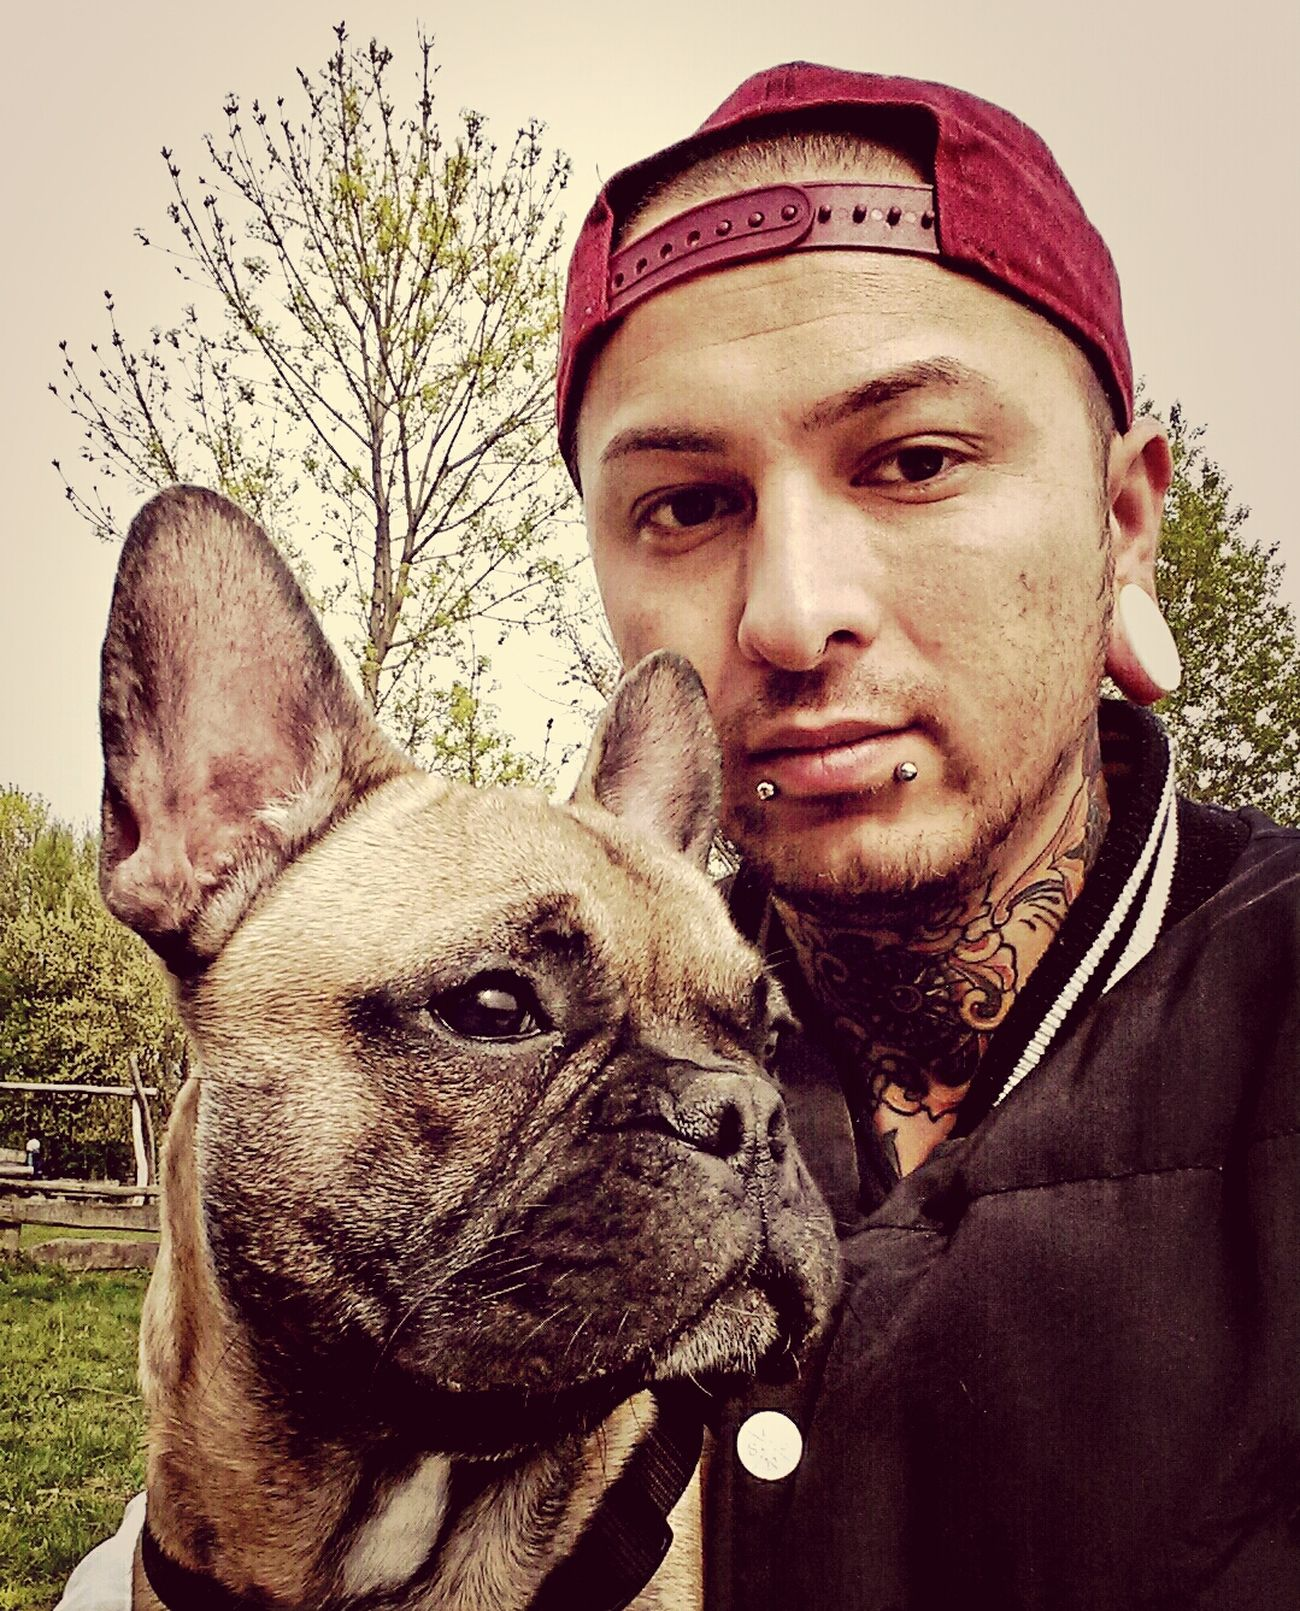 Esseesse Tattoo Frenchbully Frenchbulldog